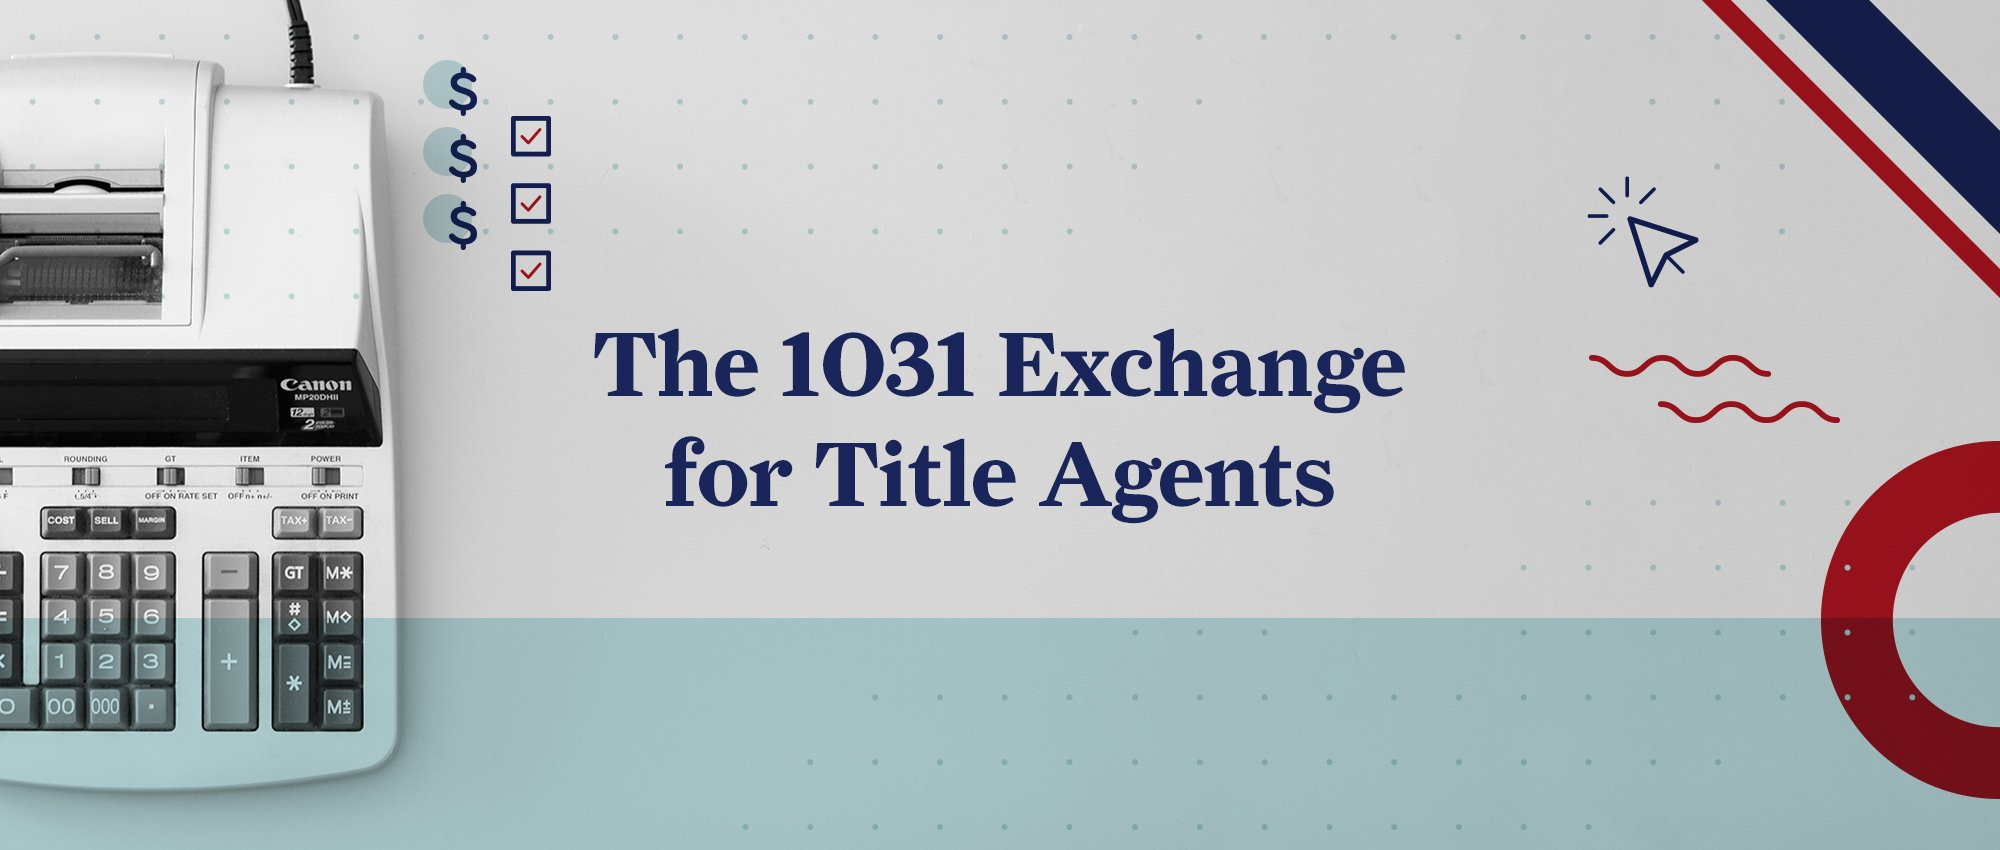 The 1031 Exchange for Title Agents